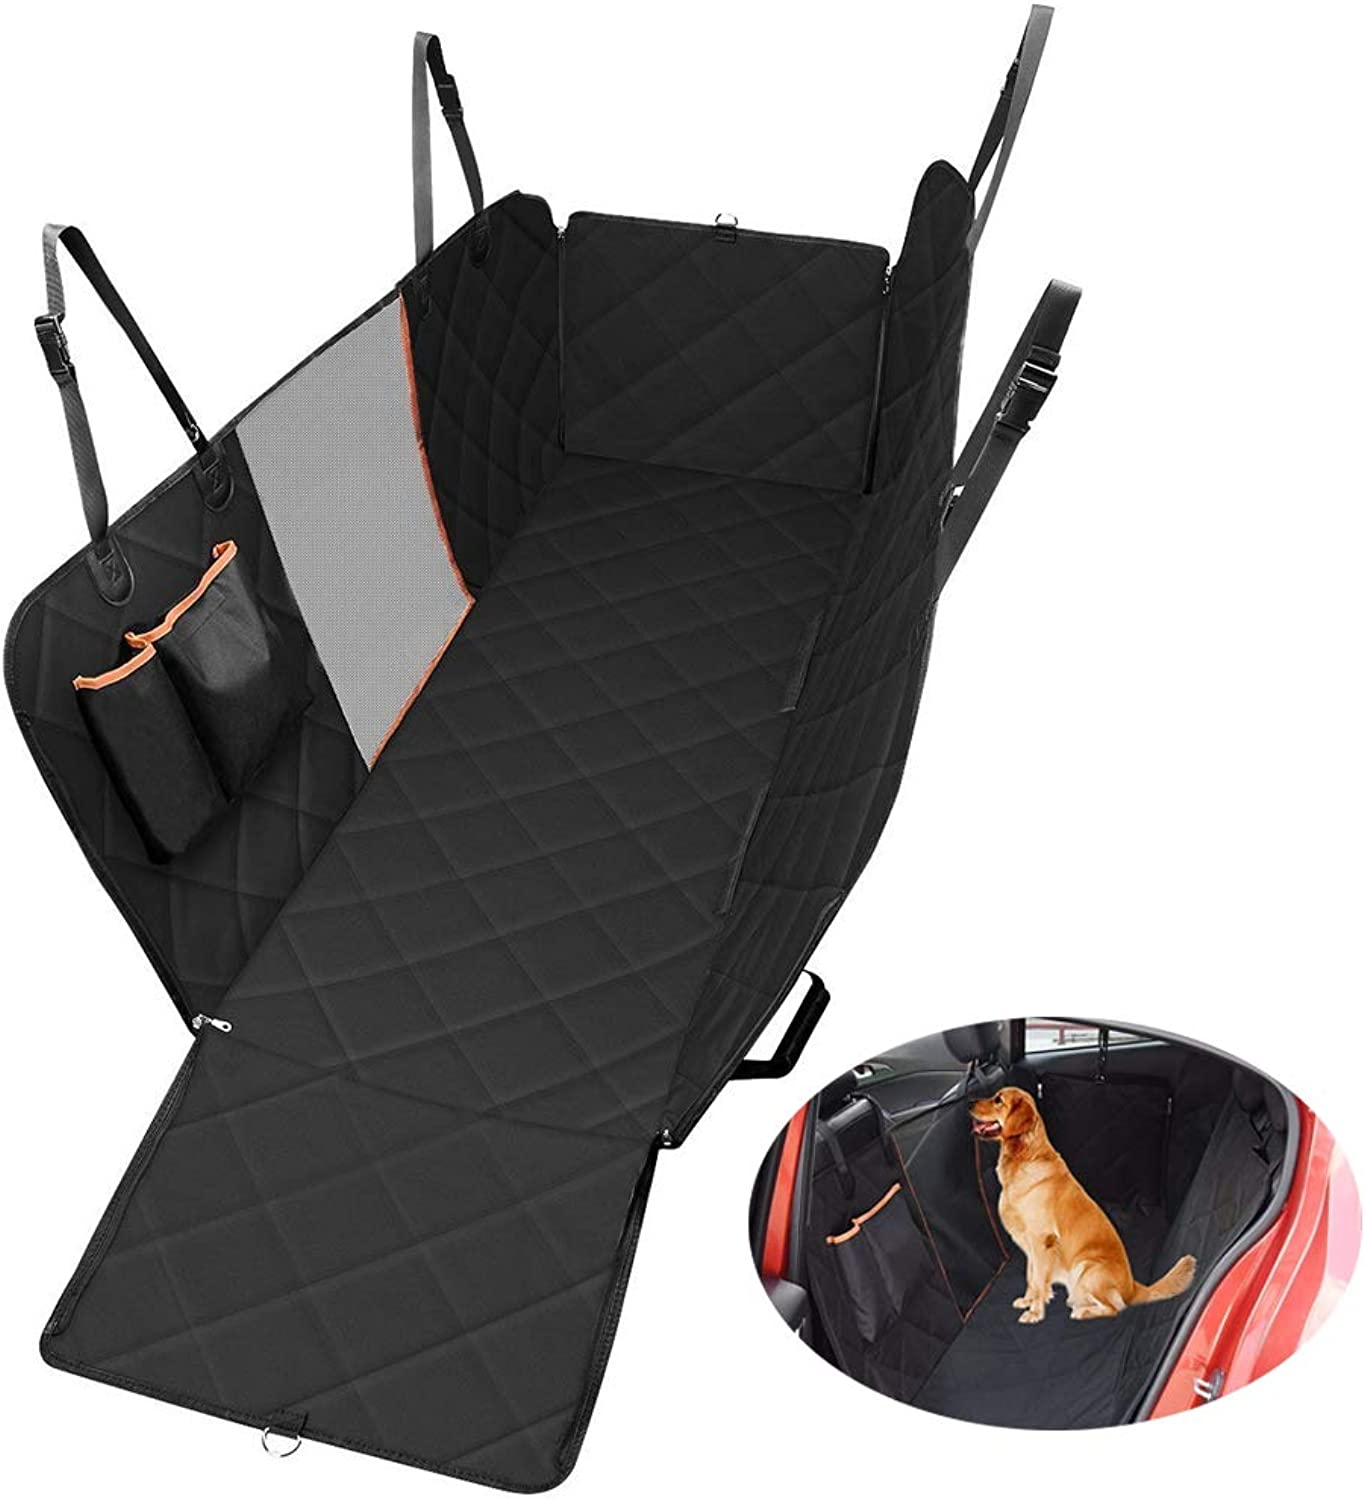 Dog Car Seat Covers with Mesh Viewing Window and Storage Bags,Heavy Duty Pet Travel Hammock,Waterproof & Scratch Proof & Washable for All Cars